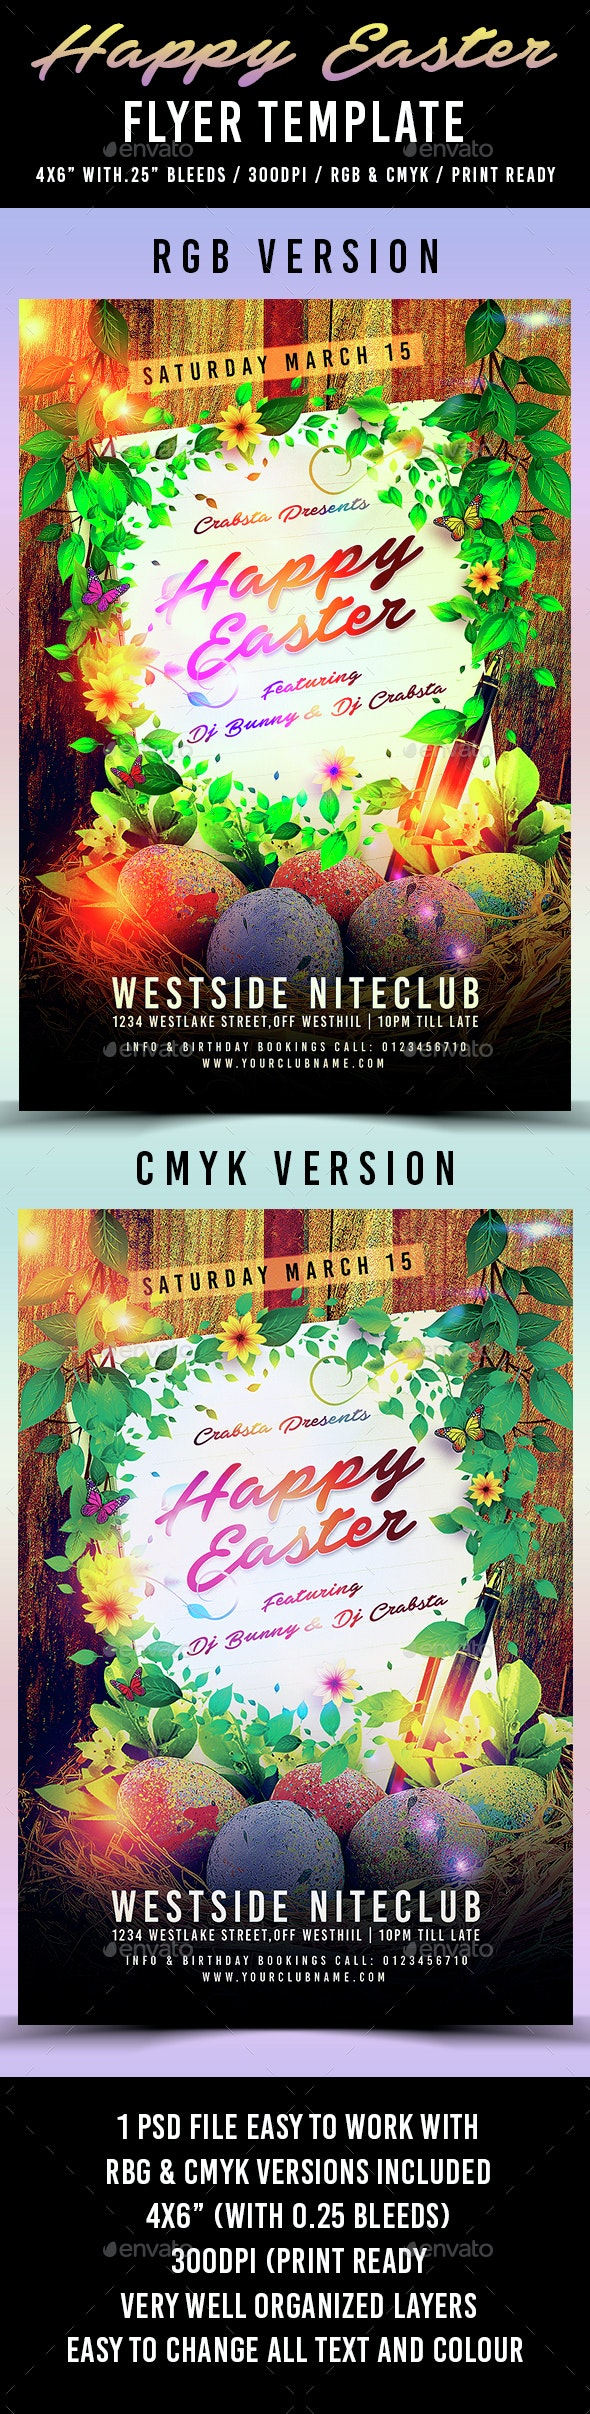 Happy Easter Flyer Template 2 - Holidays Events